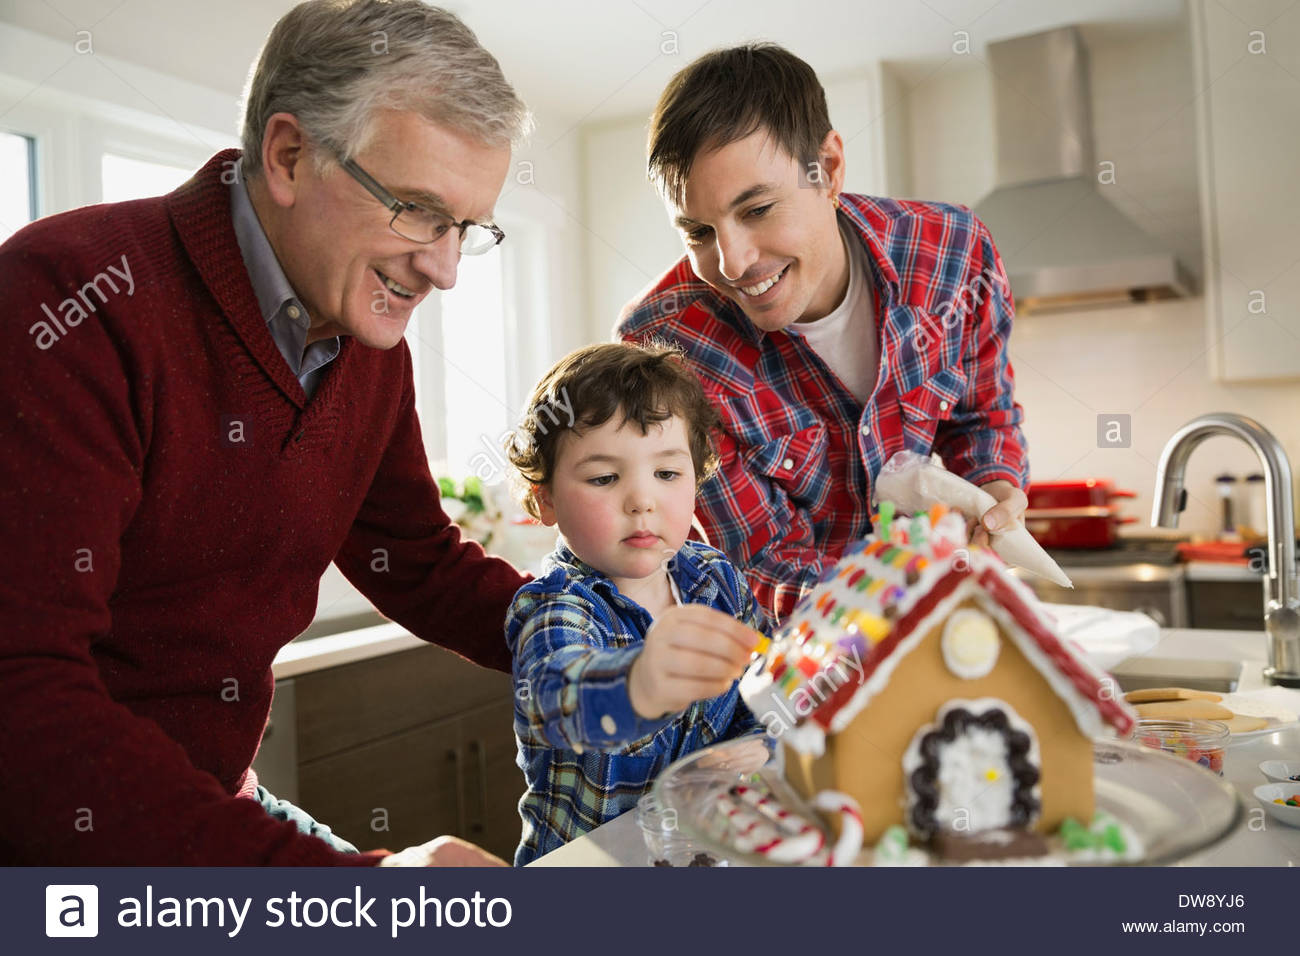 Three generation family decorating gingerbread house together - Stock Image